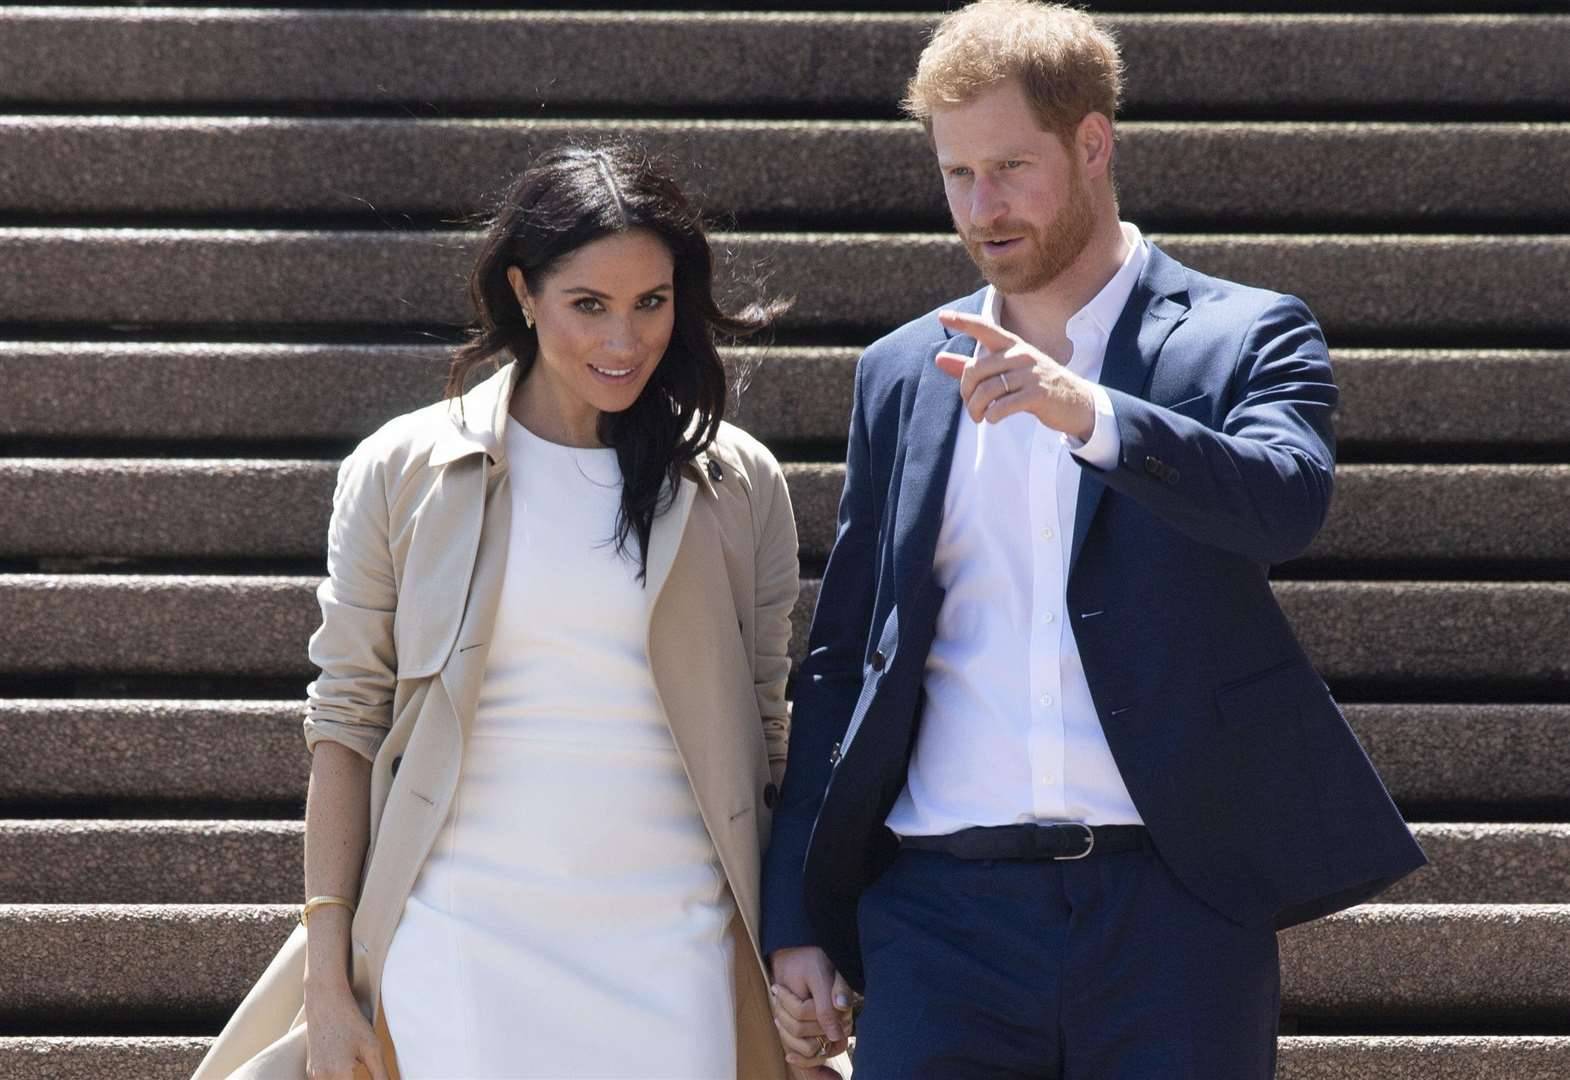 Maternity fashion lessons Meghan can learn from other royals